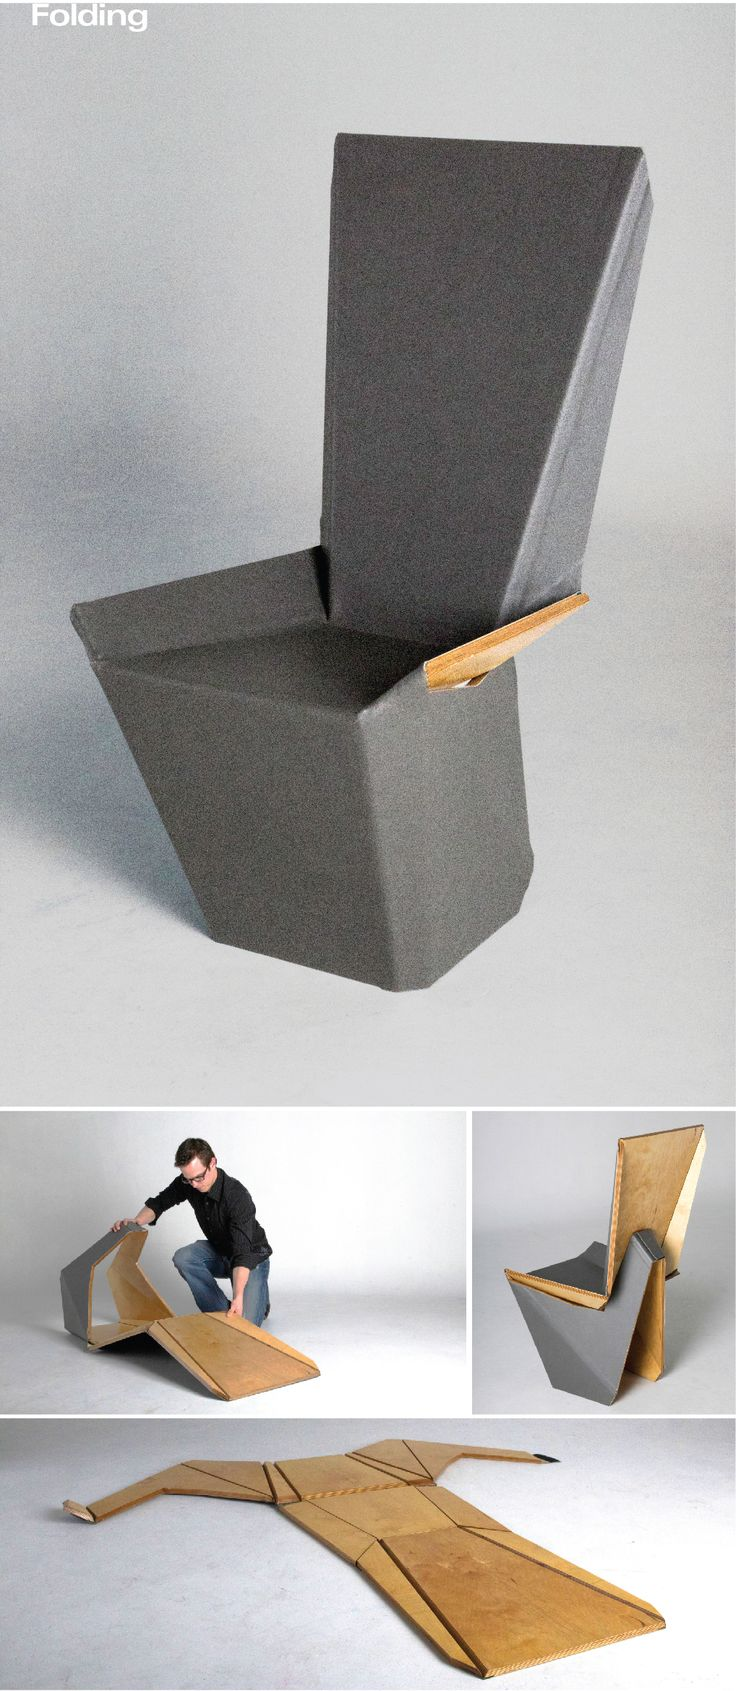 Origami Chair Flat Stanley And Origami On Pinterest